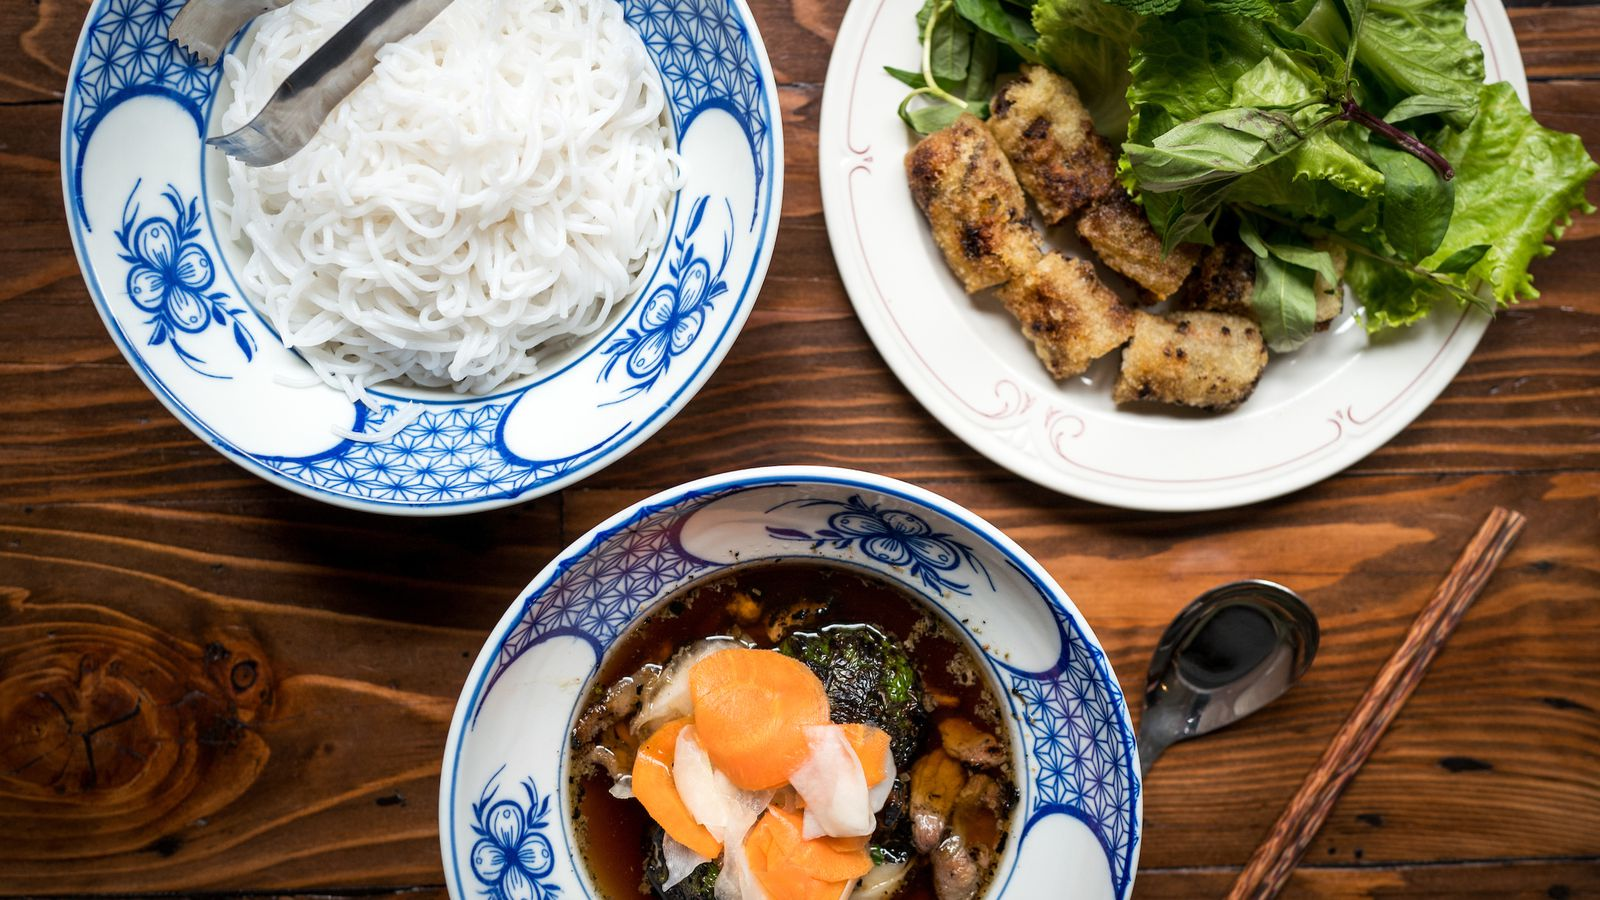 Fe Fi Pho, No Fumble at Hanoi House in the East Village